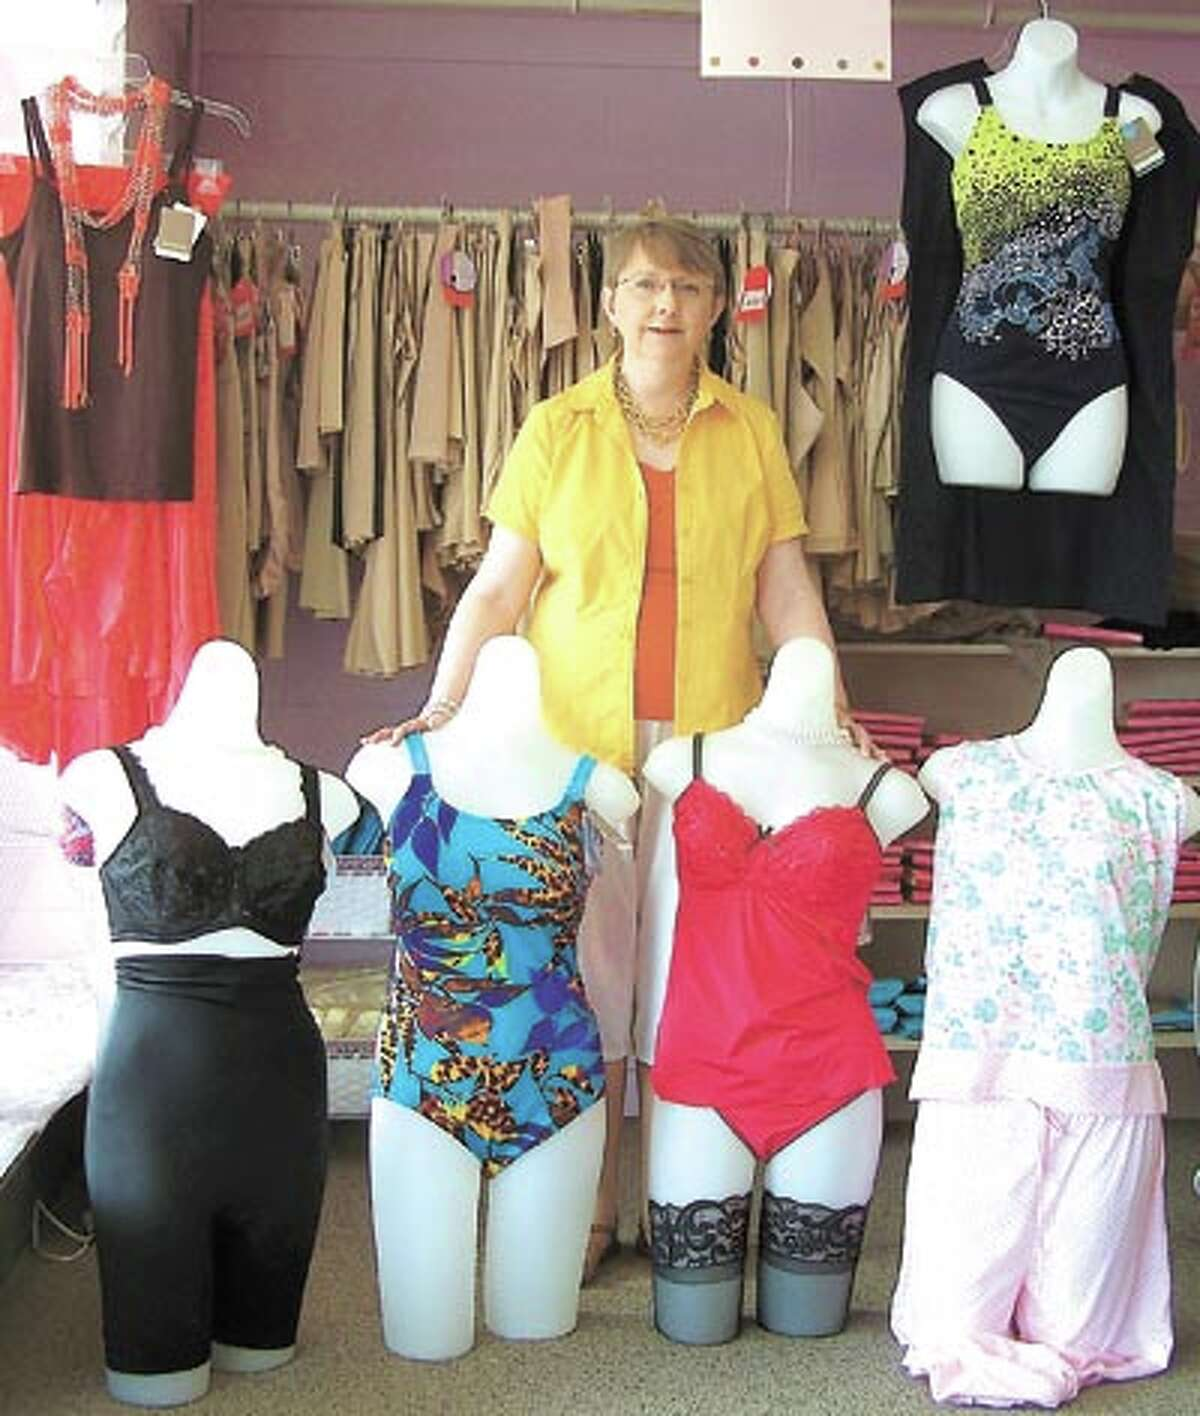 Swimsuits in this year's fashion colors are ready for you to try on at The Pennyrich Shop, 311 Dodson Street in Old Town Midland.